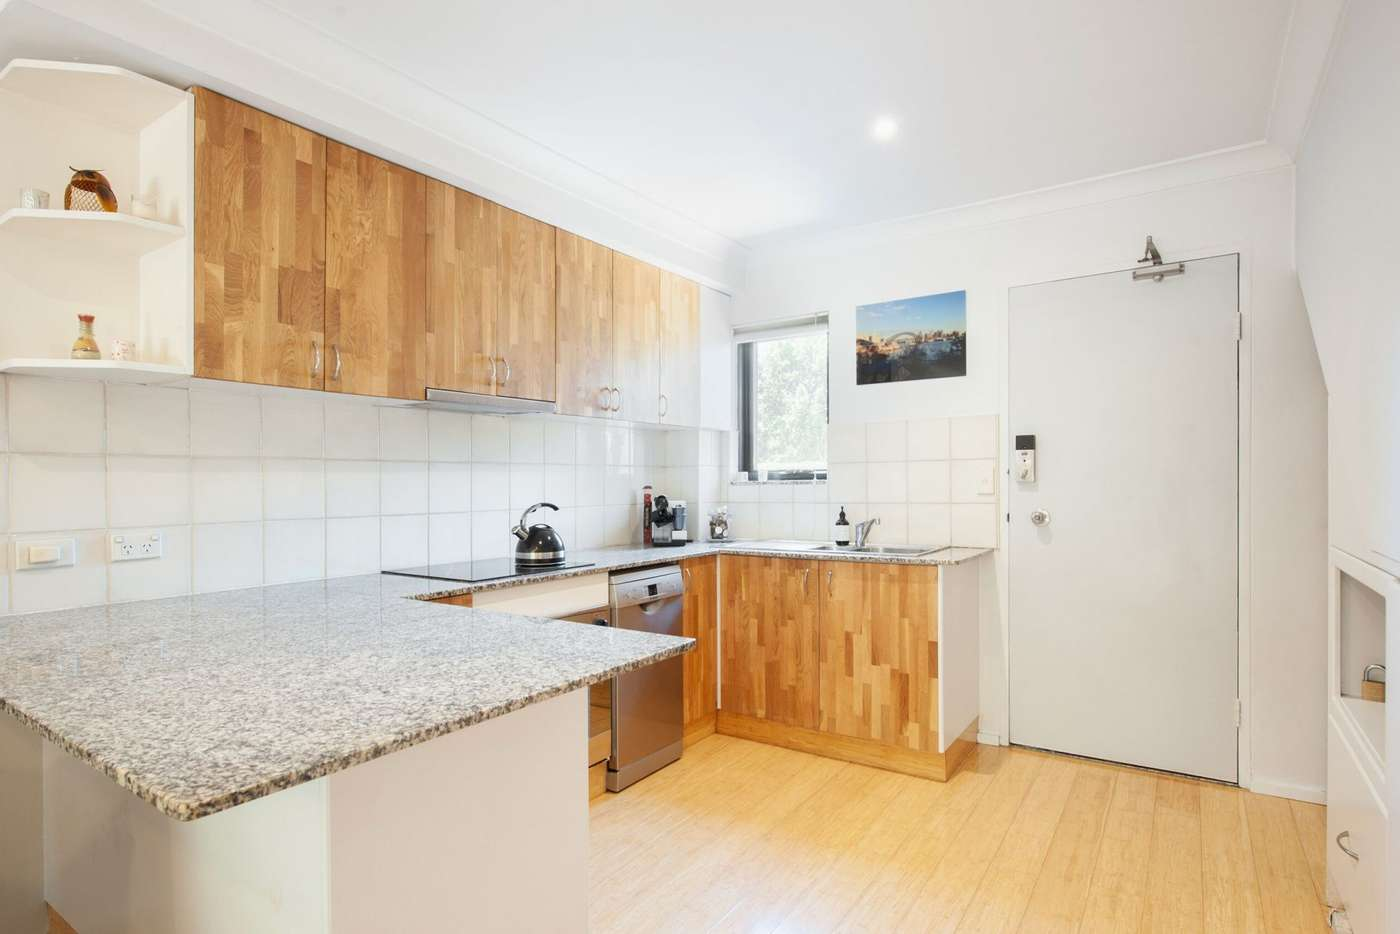 Sixth view of Homely apartment listing, 25/5-17 Pacific Highway, Roseville NSW 2069